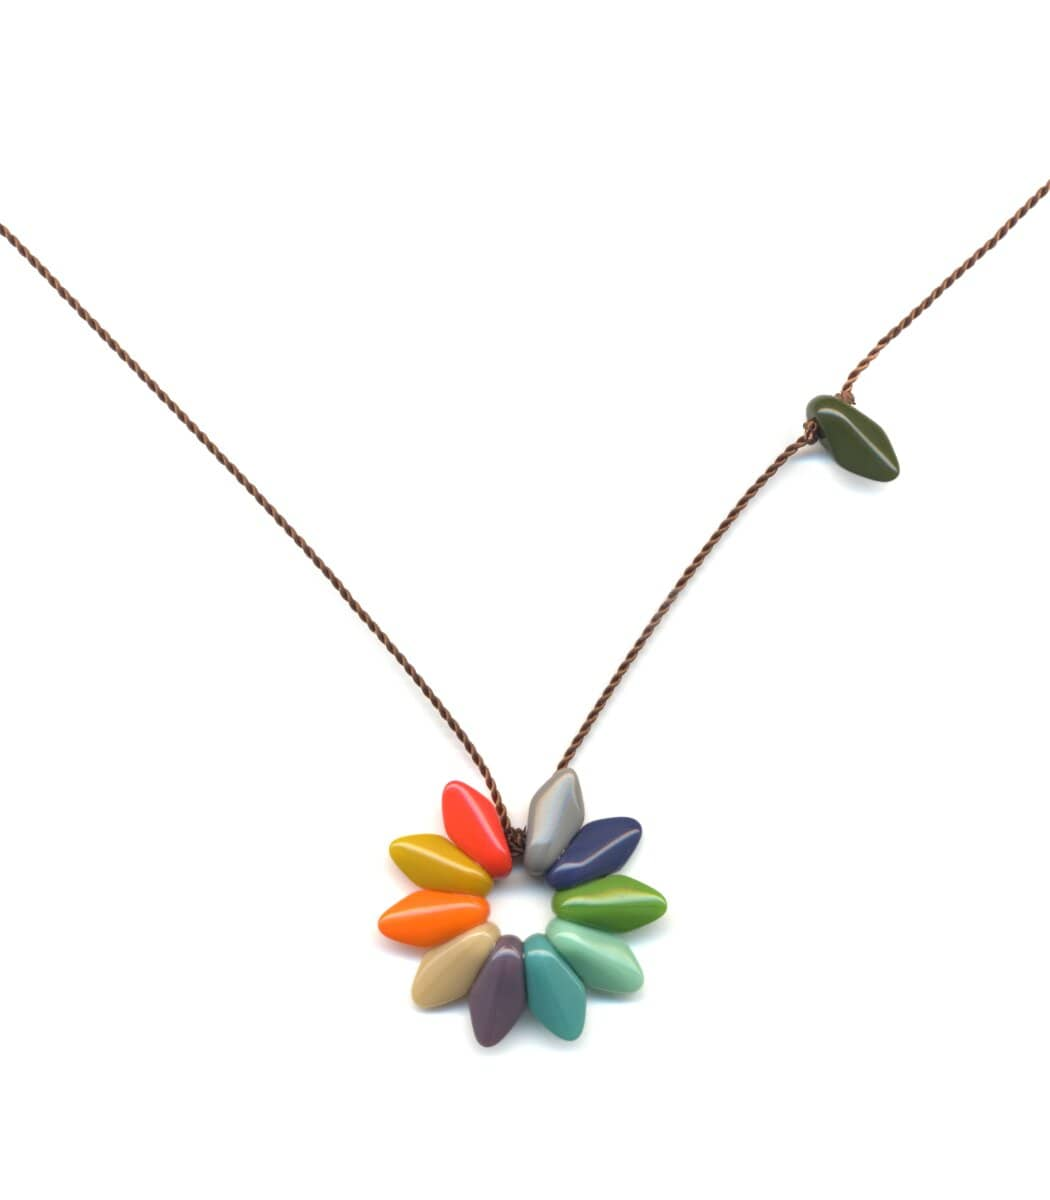 Irk Jewelry I. Ronni Kappos N1876 Small Rainbow Flower Necklace